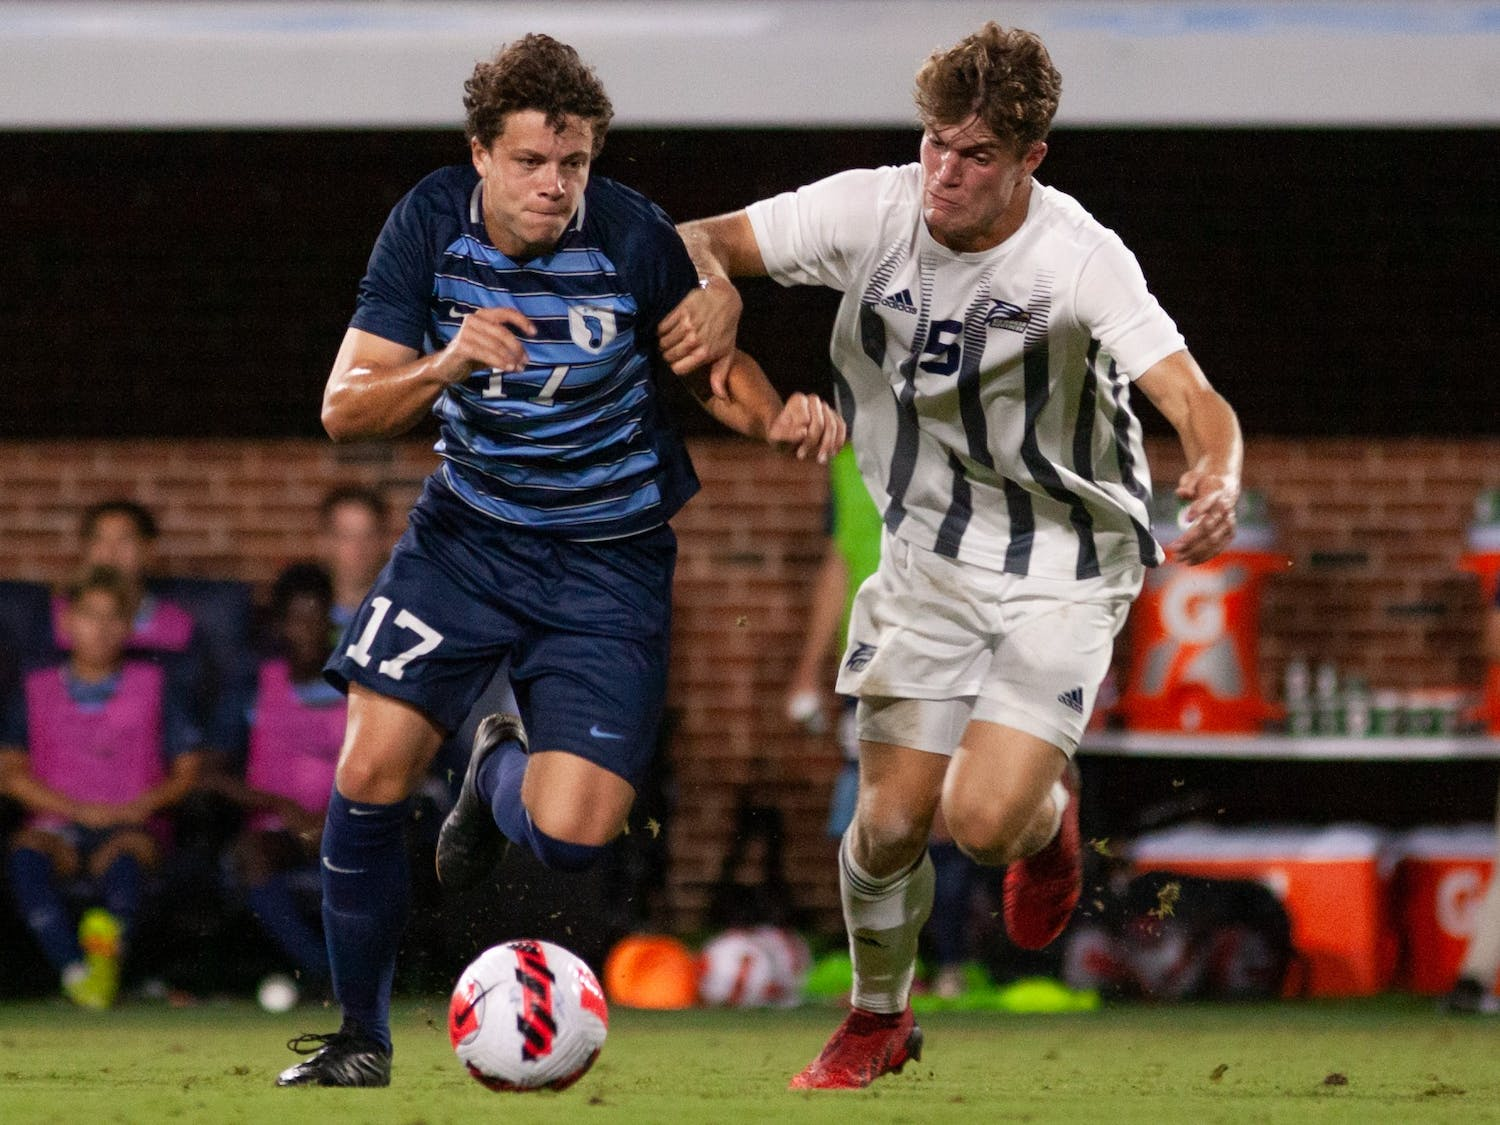 UNC junior midfielder Cameron Fisher (17) struggles for posession of the ball during the UNC v. Georgia Southern game at Dorrance Field on Sep. 3.